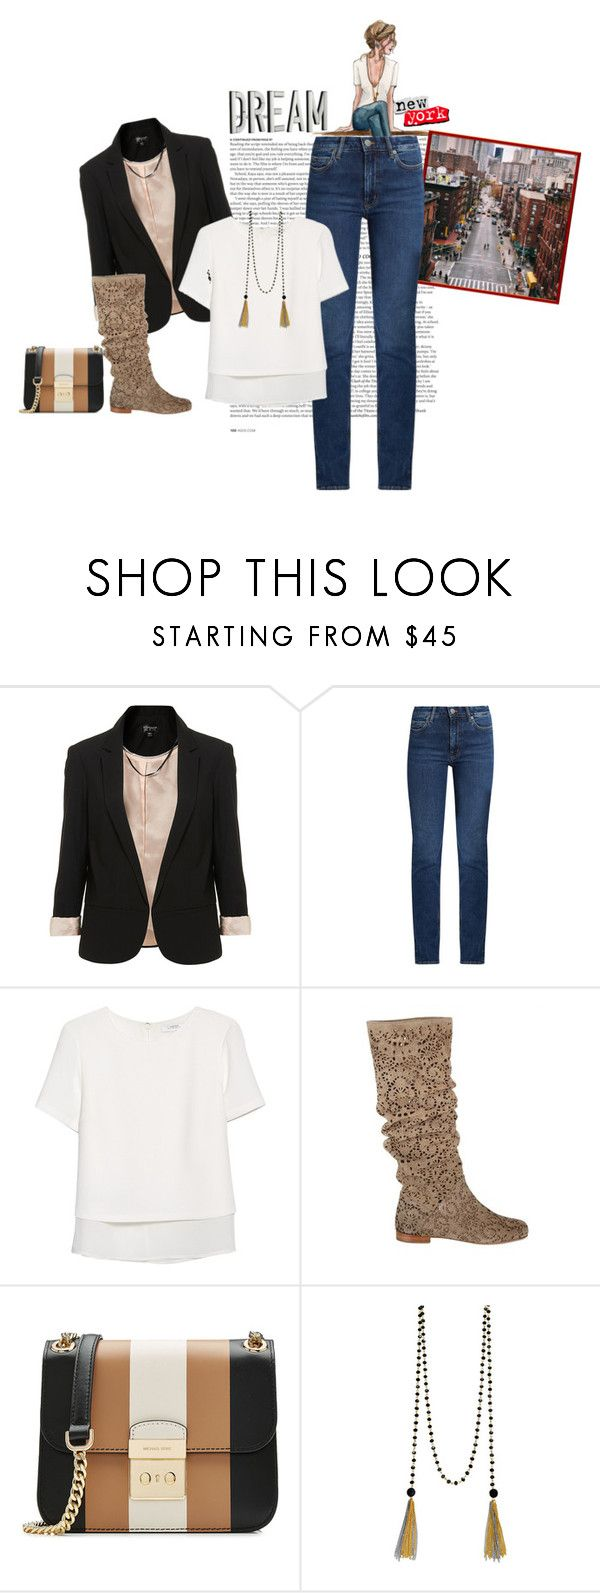 """""""Shopping con le amiche"""" by piccolauby ❤ liked on Polyvore featuring ASOS, Topshop, M.i.h Jeans, MANGO, Peter Flowers, MICHAEL Michael Kors, John Lewis and MML"""